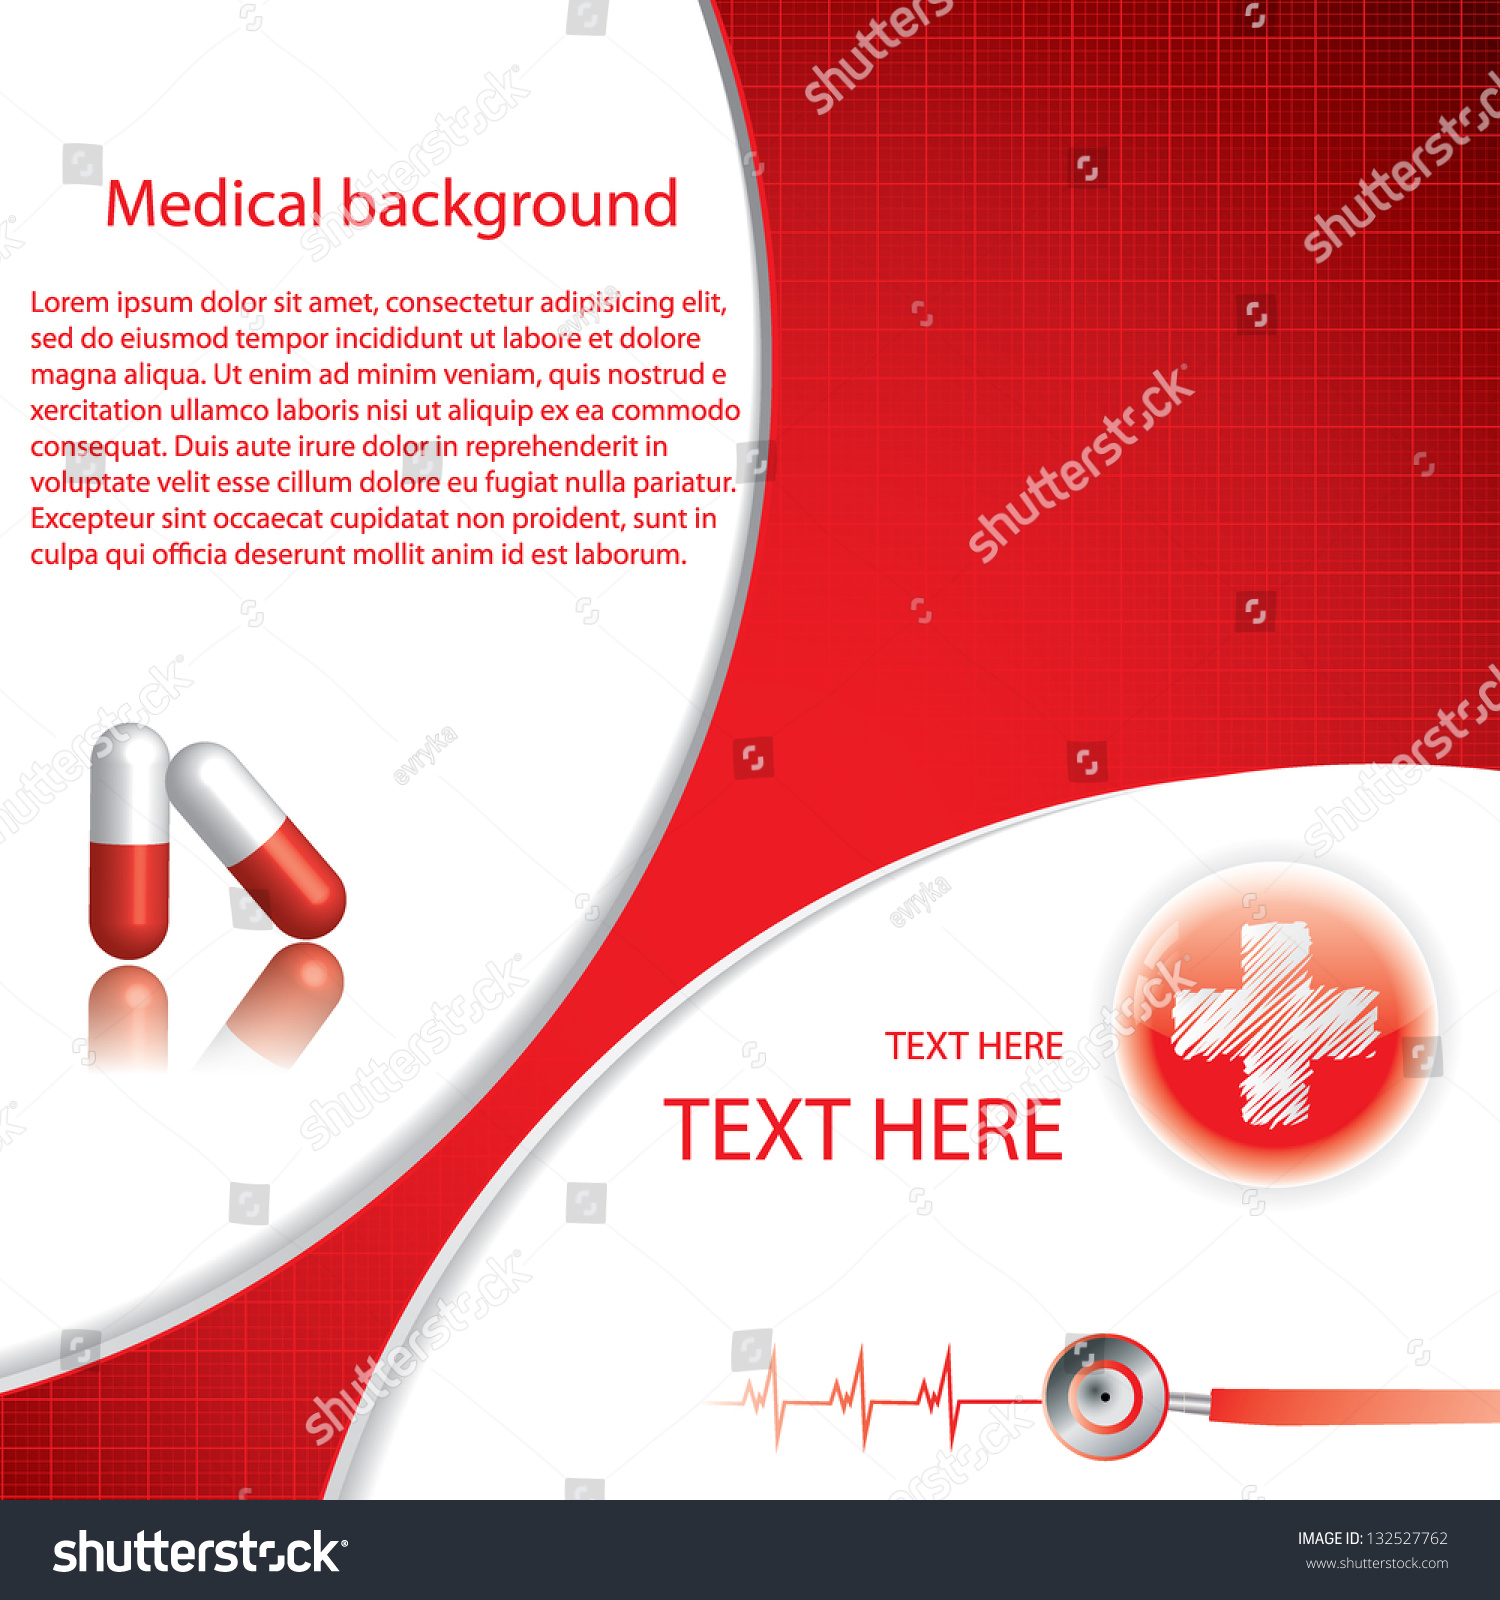 red medical background - photo #20